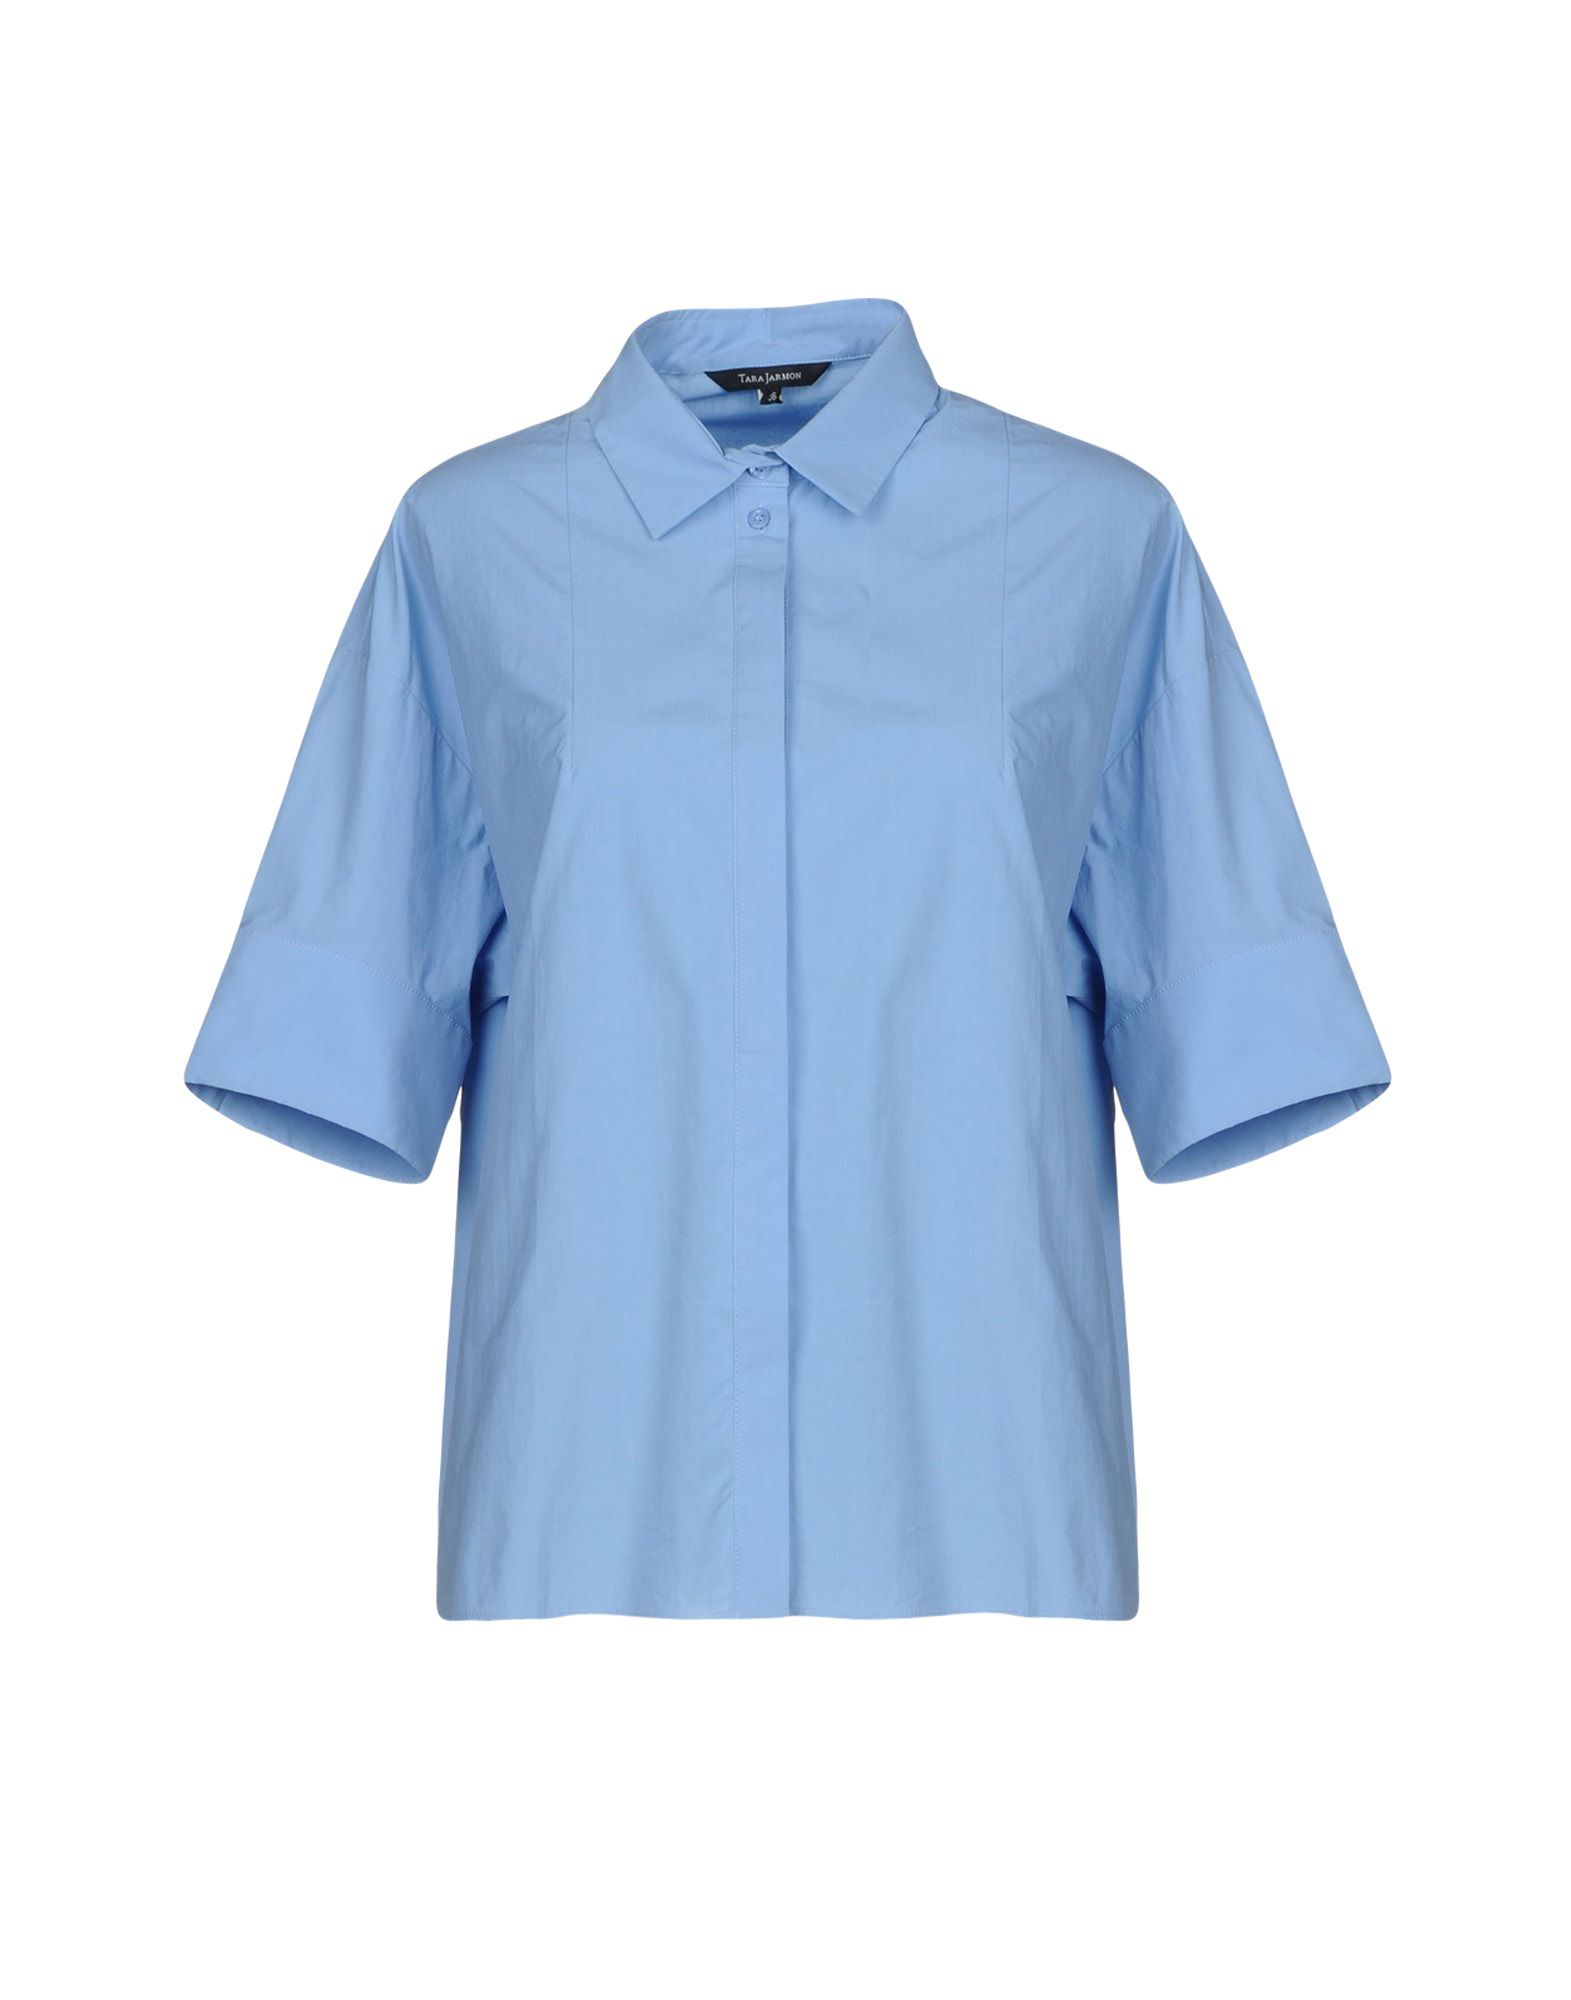 TARA JARMON Solid Color Shirts & Blouses in Sky Blue